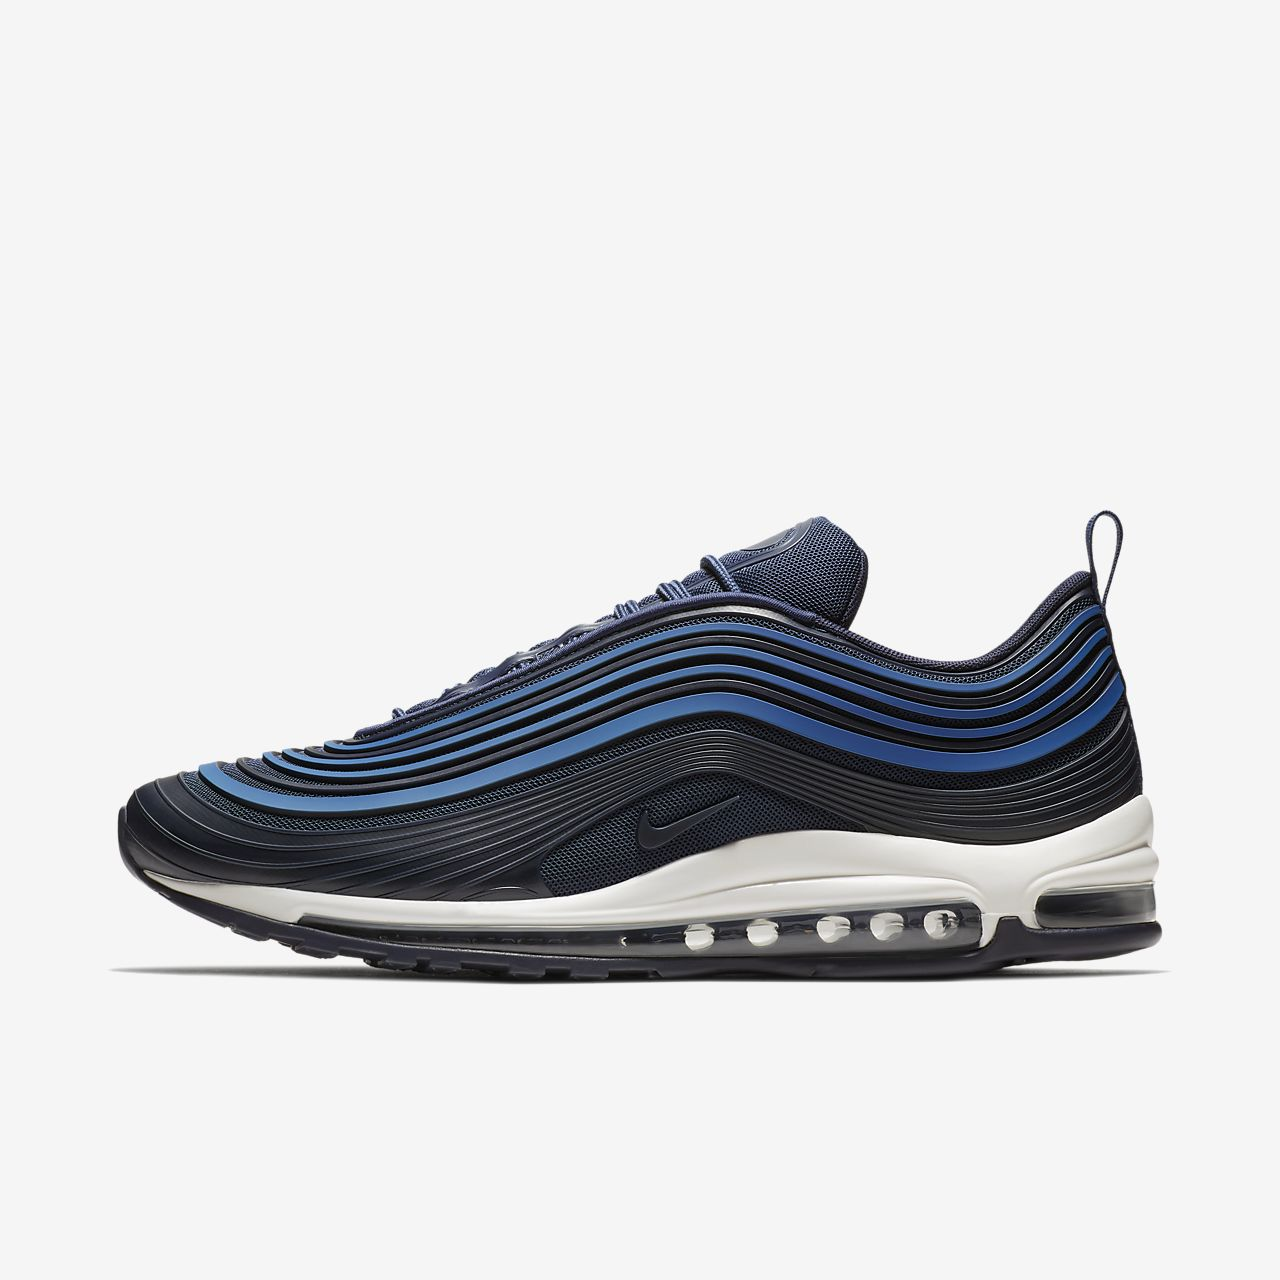 Air Max 97 MID / RT